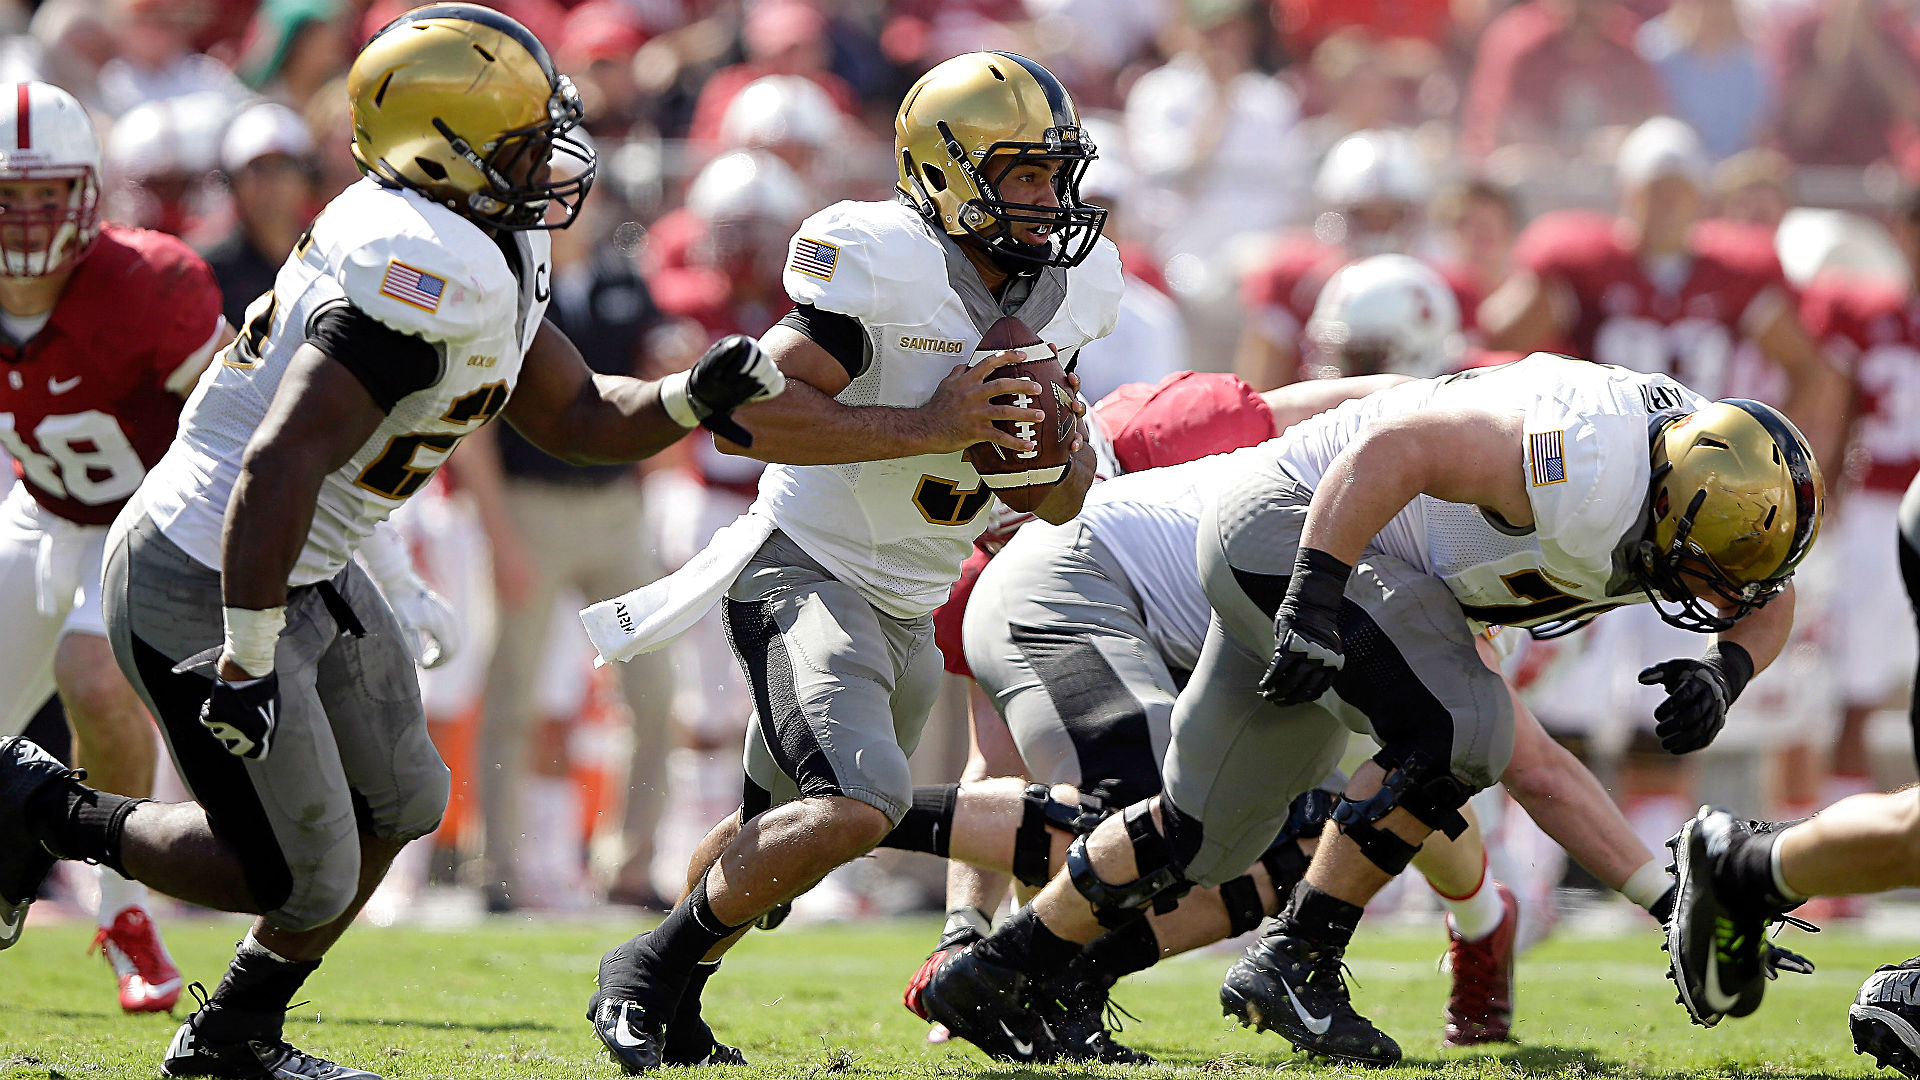 AccuScore forecasts 115th Army-Navy game - Midshipmen looking for lucky No. 13